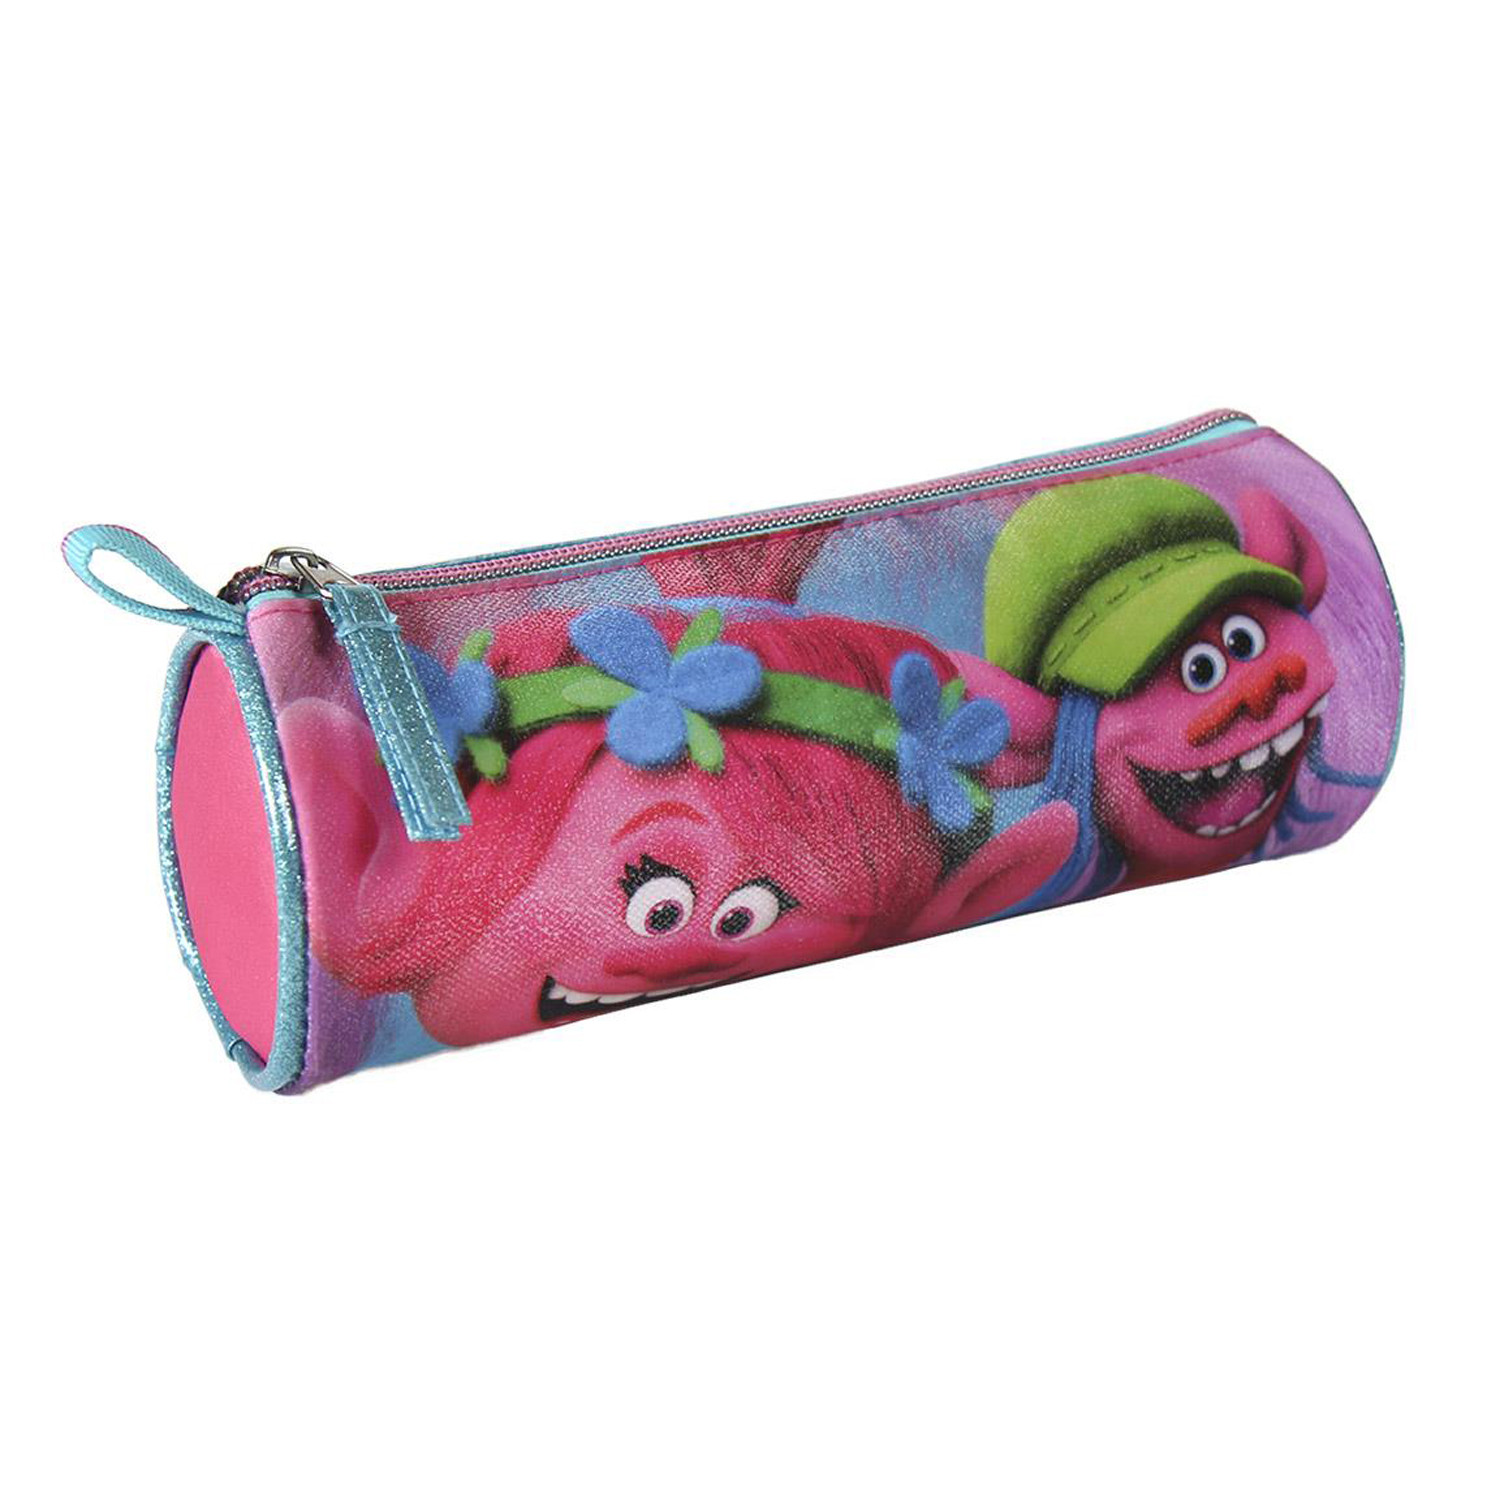 Case Cylindrical pencil case of Trolls Original Home and More